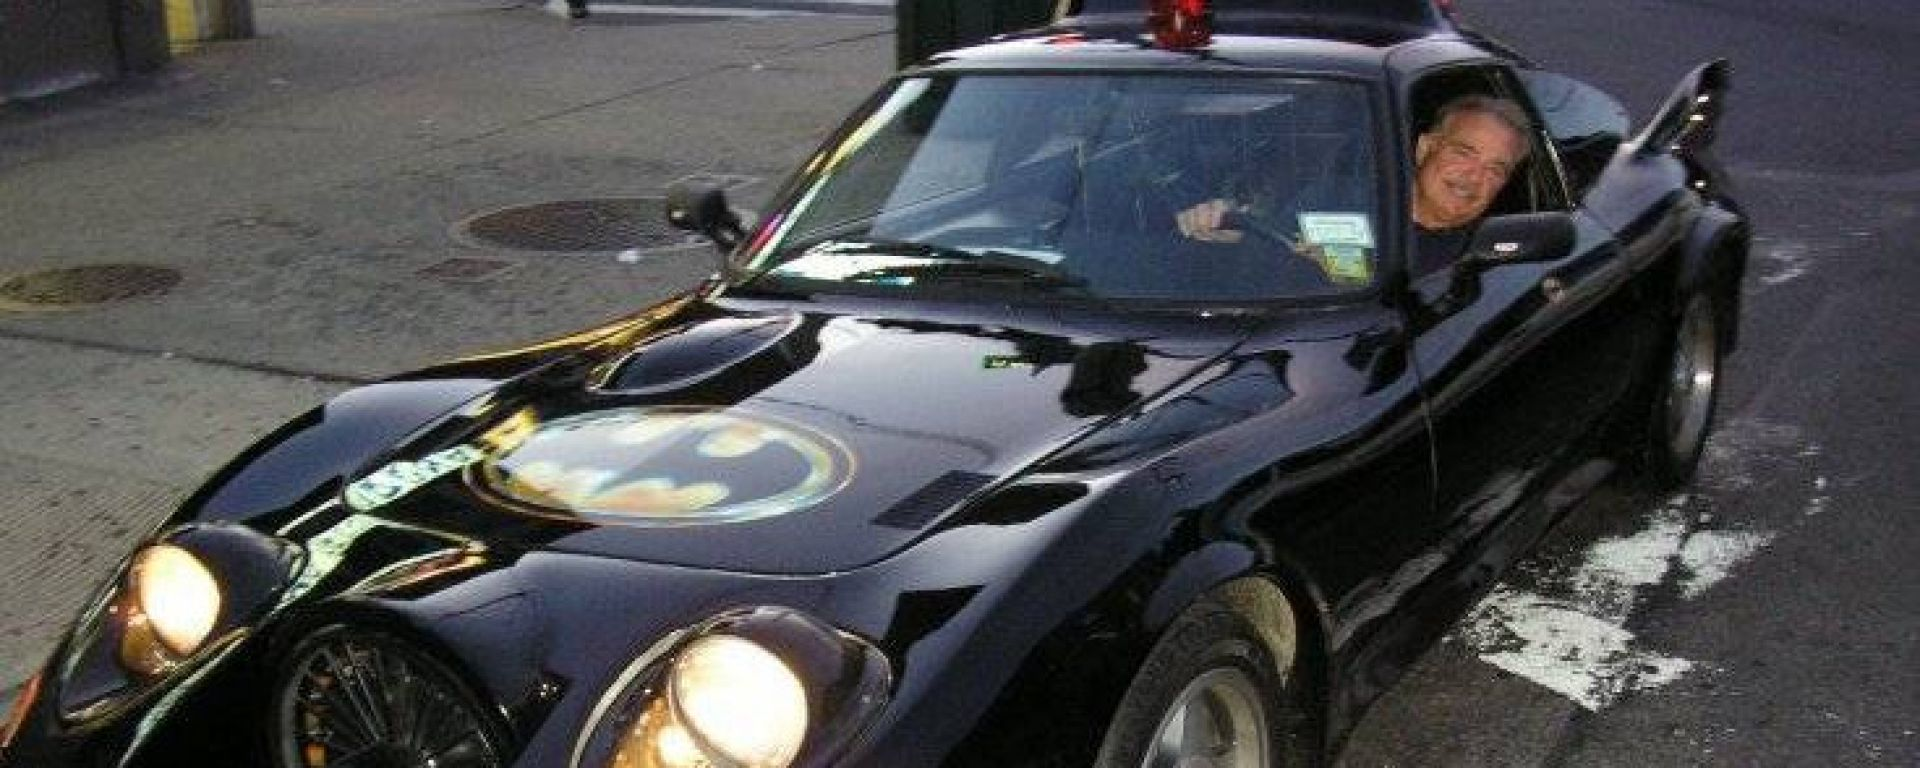 Batmobile: l'auto di Batman in vendita su Craigslist